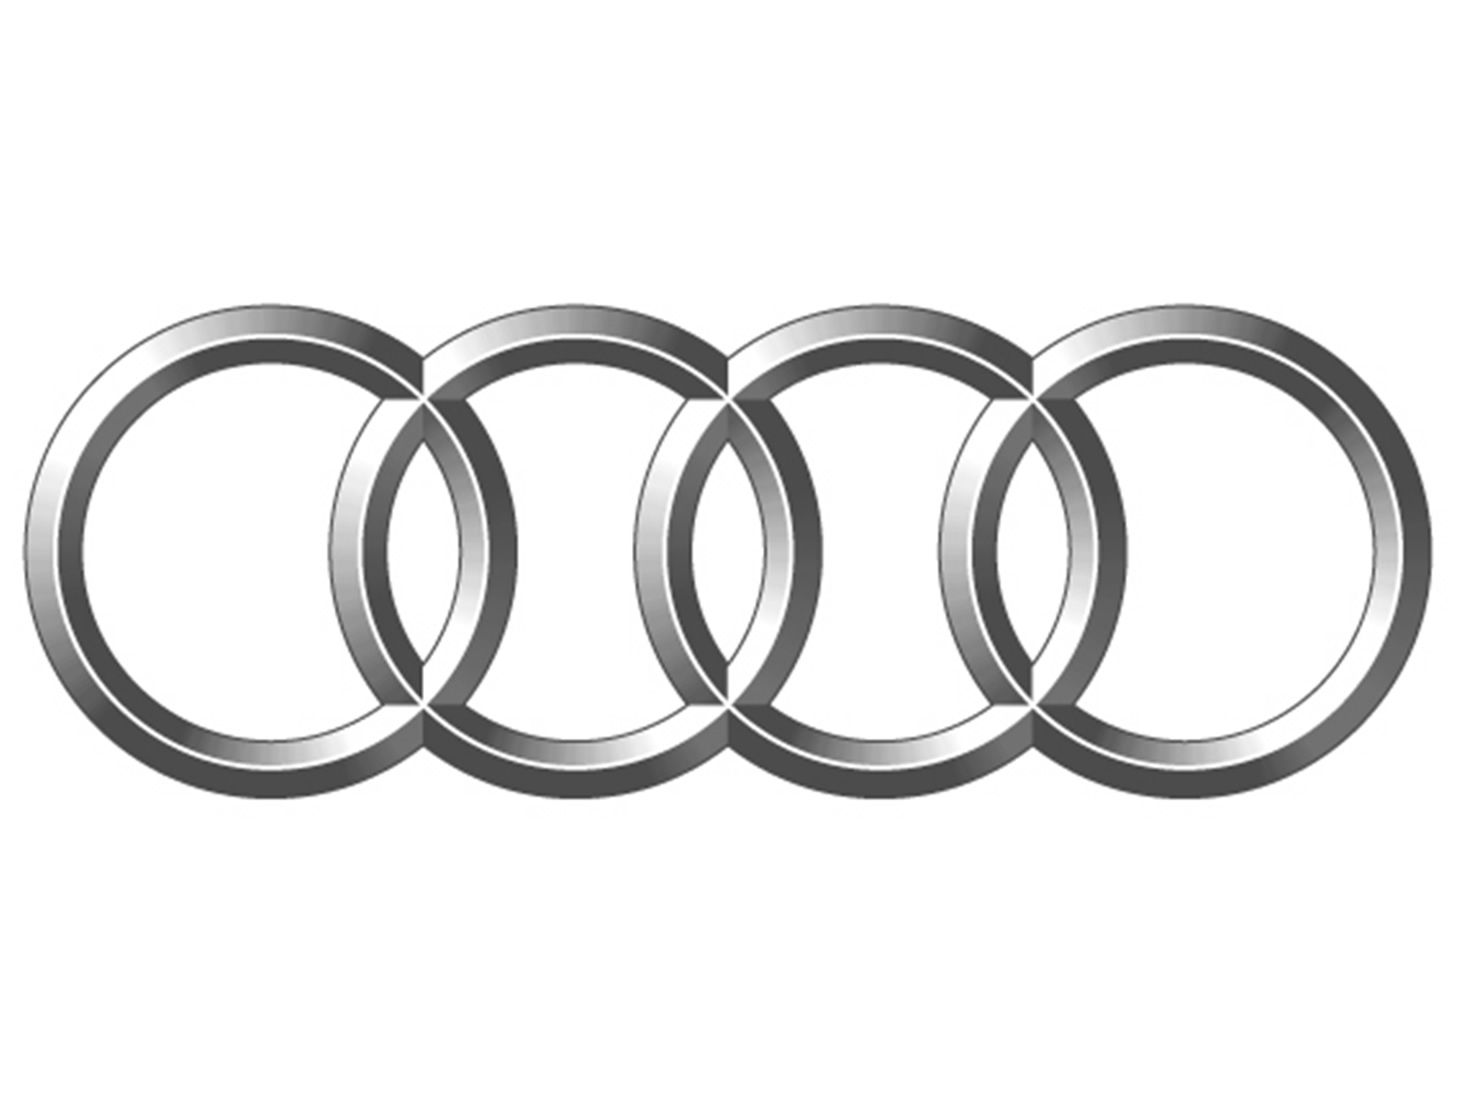 Audi Logo - Image - Audi logo 001.jpg | DiRT 3 Wiki | FANDOM powered by Wikia